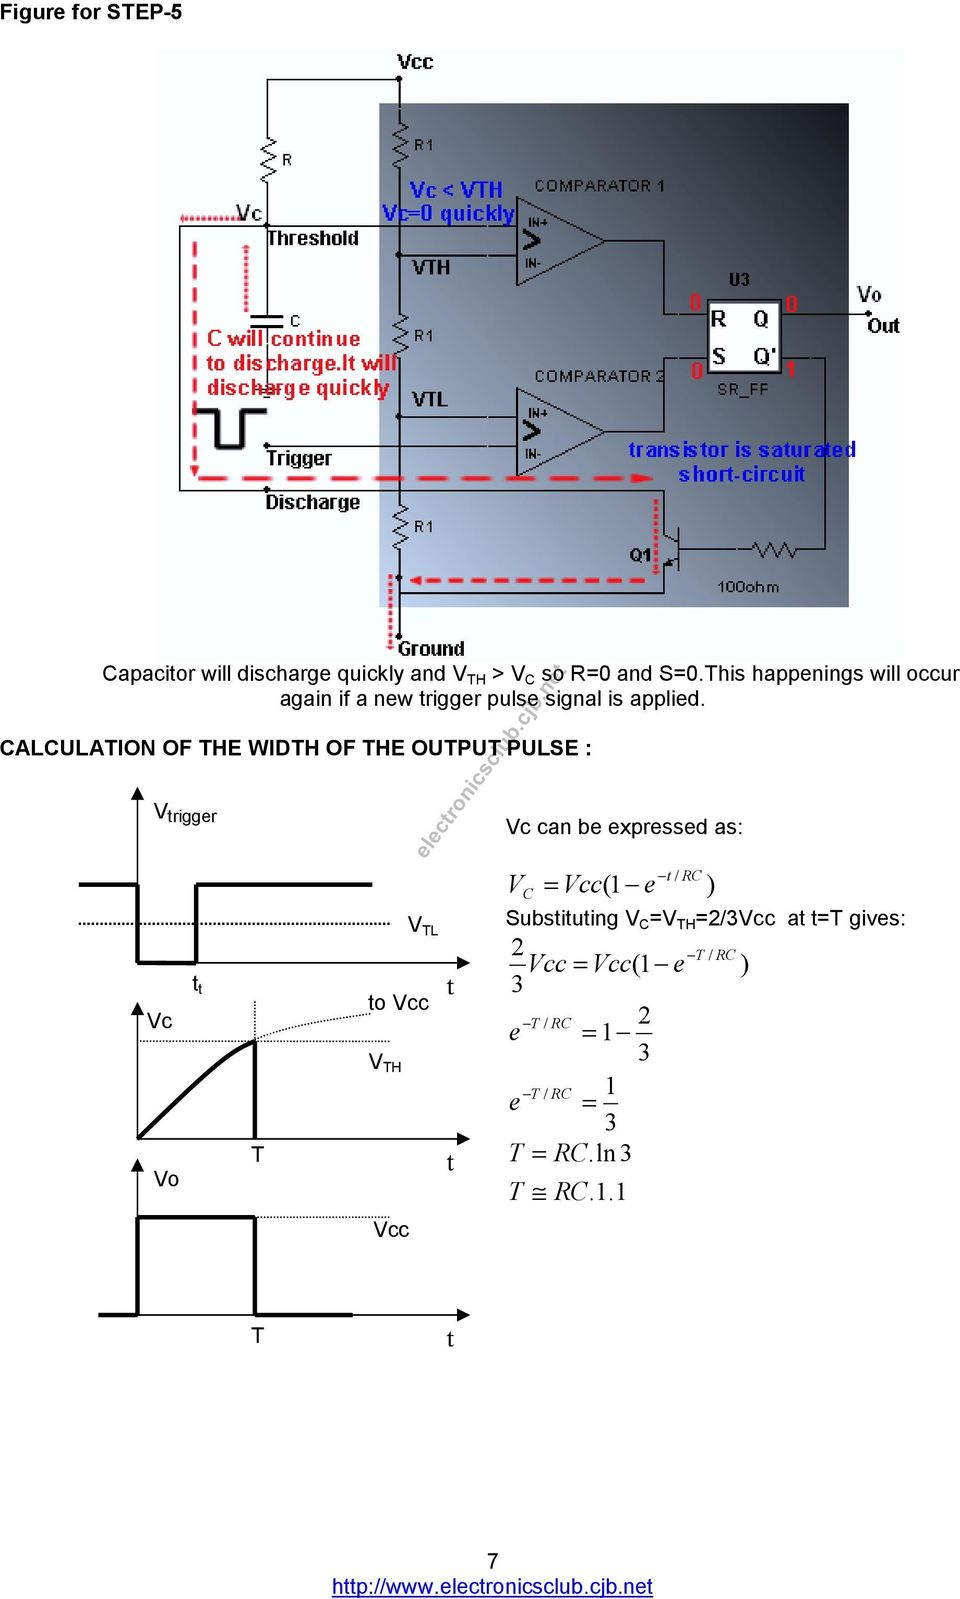 CALCULATION OF THE WIDTH OF THE OUTPUT PULSE : V rigger Vc Vo T V TL o Vcc V TH Vcc Vc can be